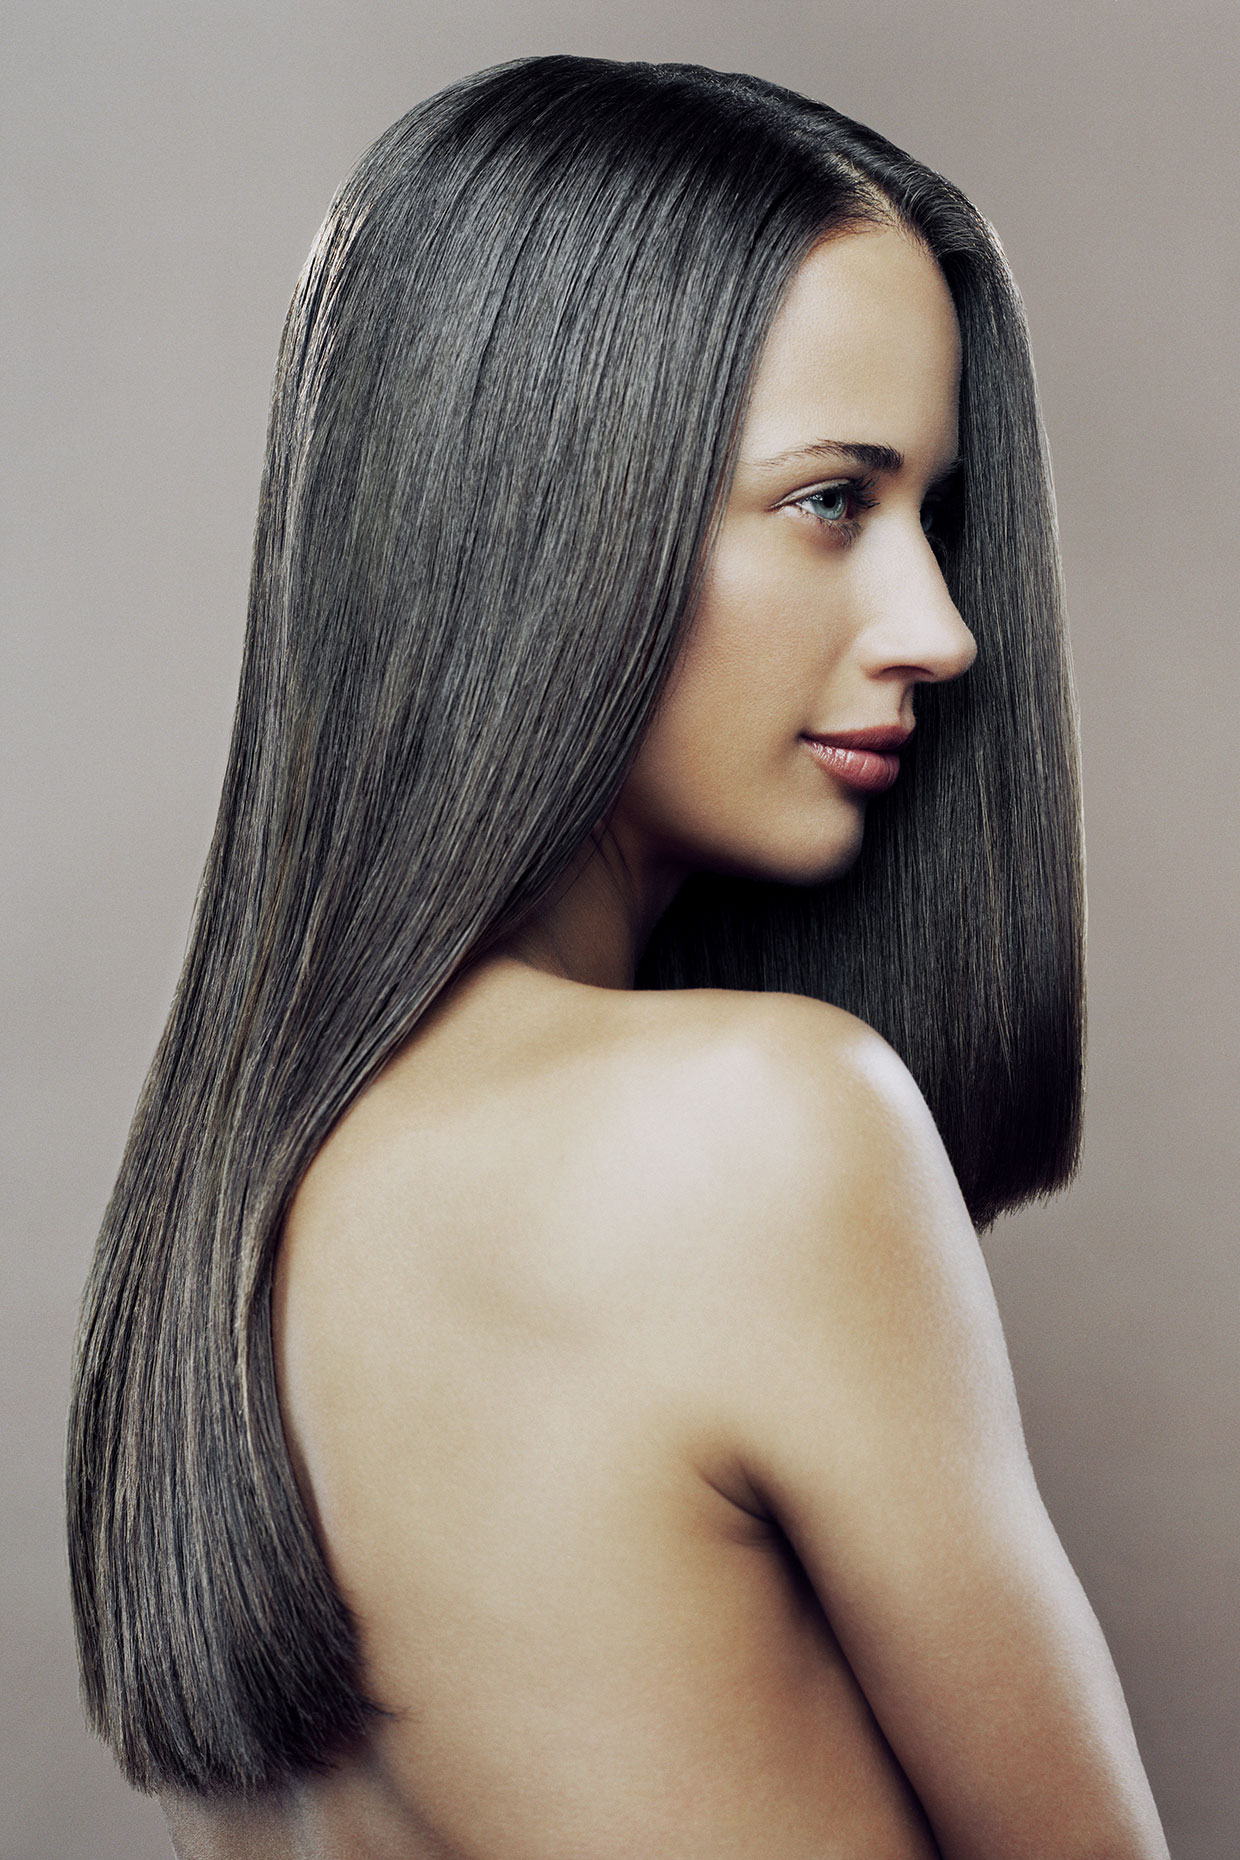 Woman with long, shiny  hair in a profile position.